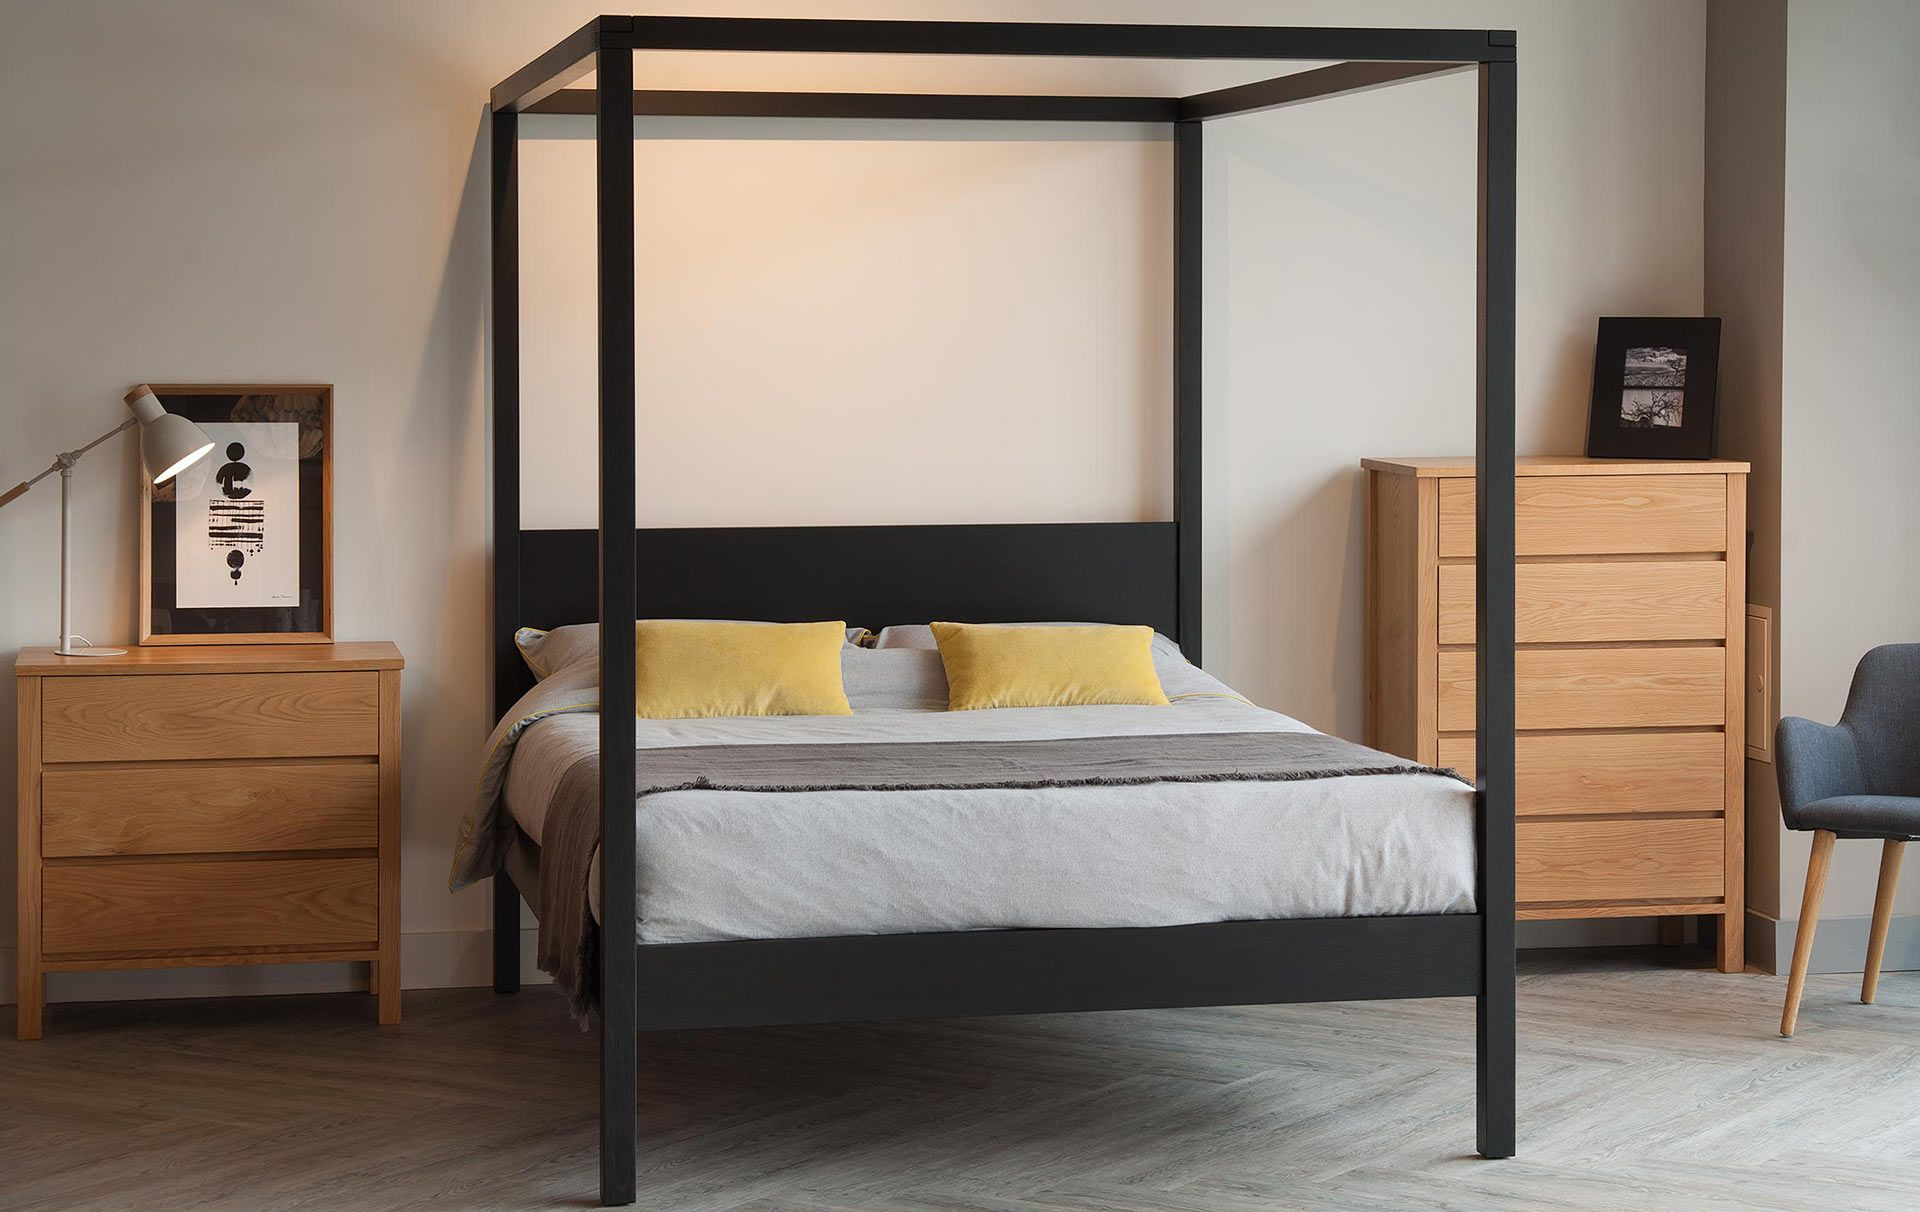 Black Orchid Contemporary 4 Poster Bespoke beds, Four